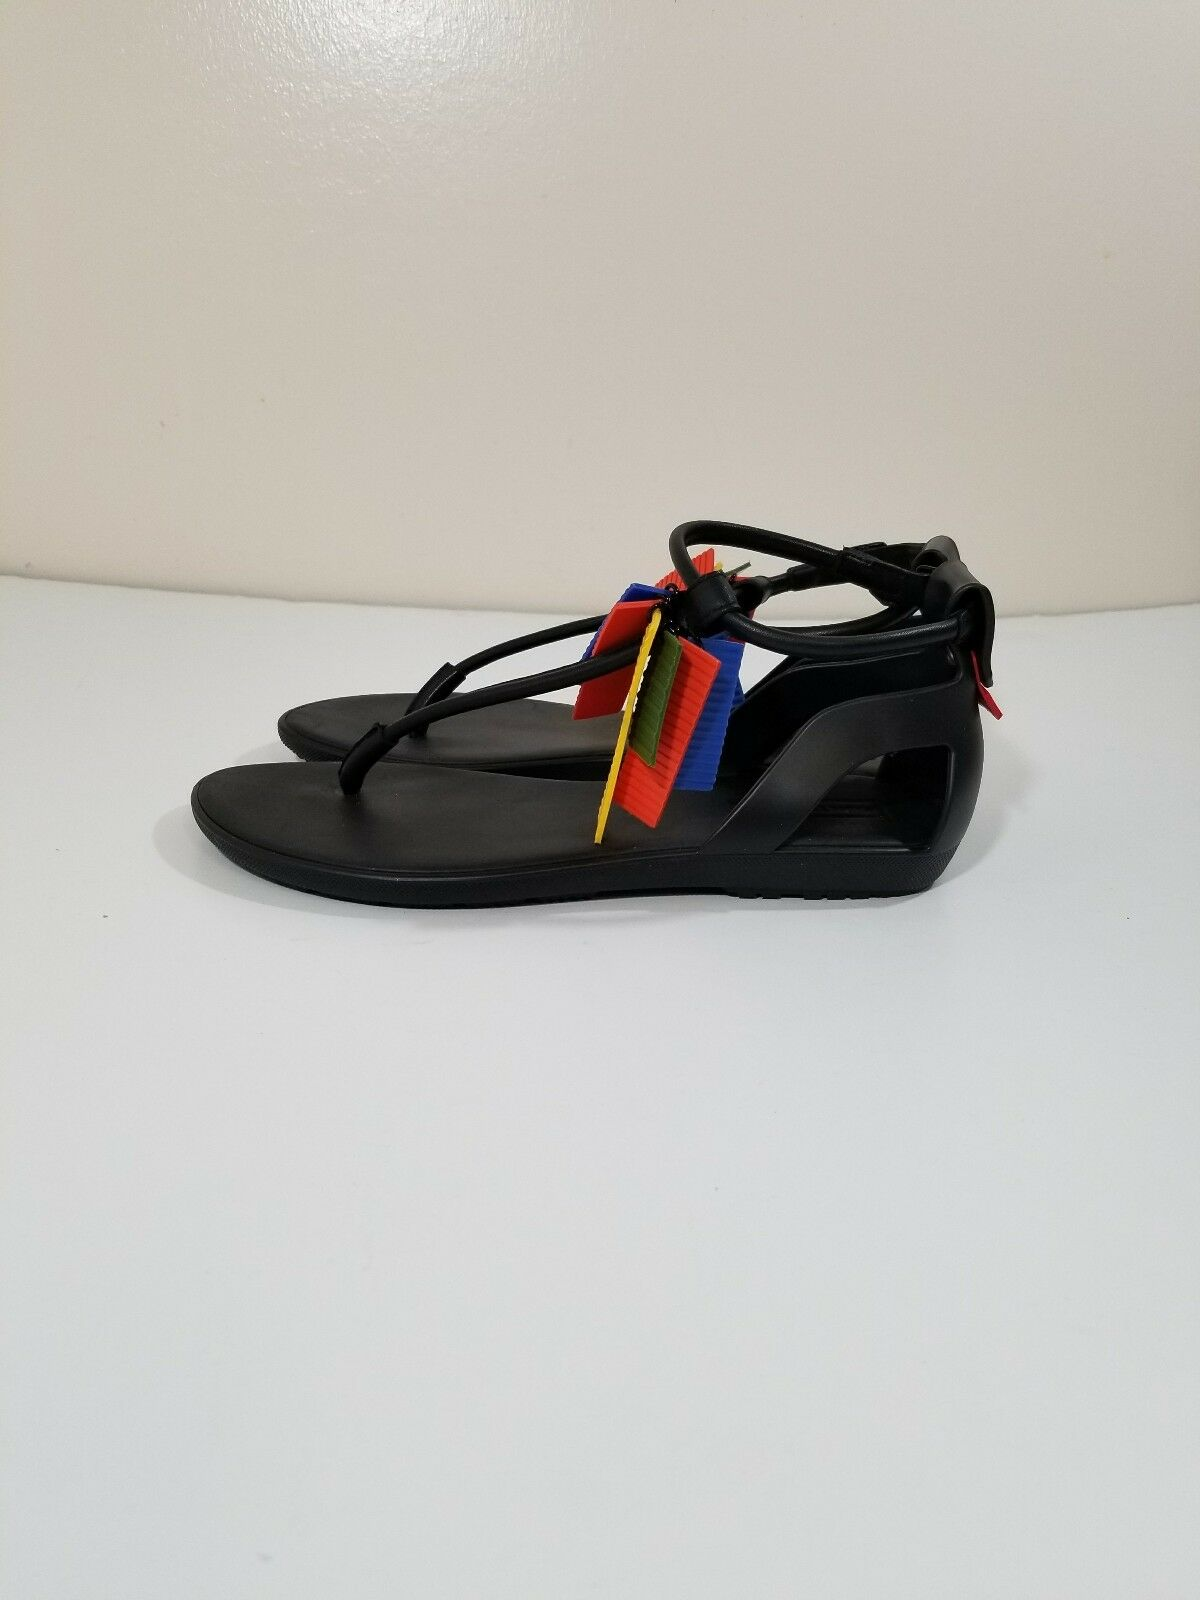 Hunter Black T Bar Thong color Pieces Sandals Size 7 NWOB Made in Italty